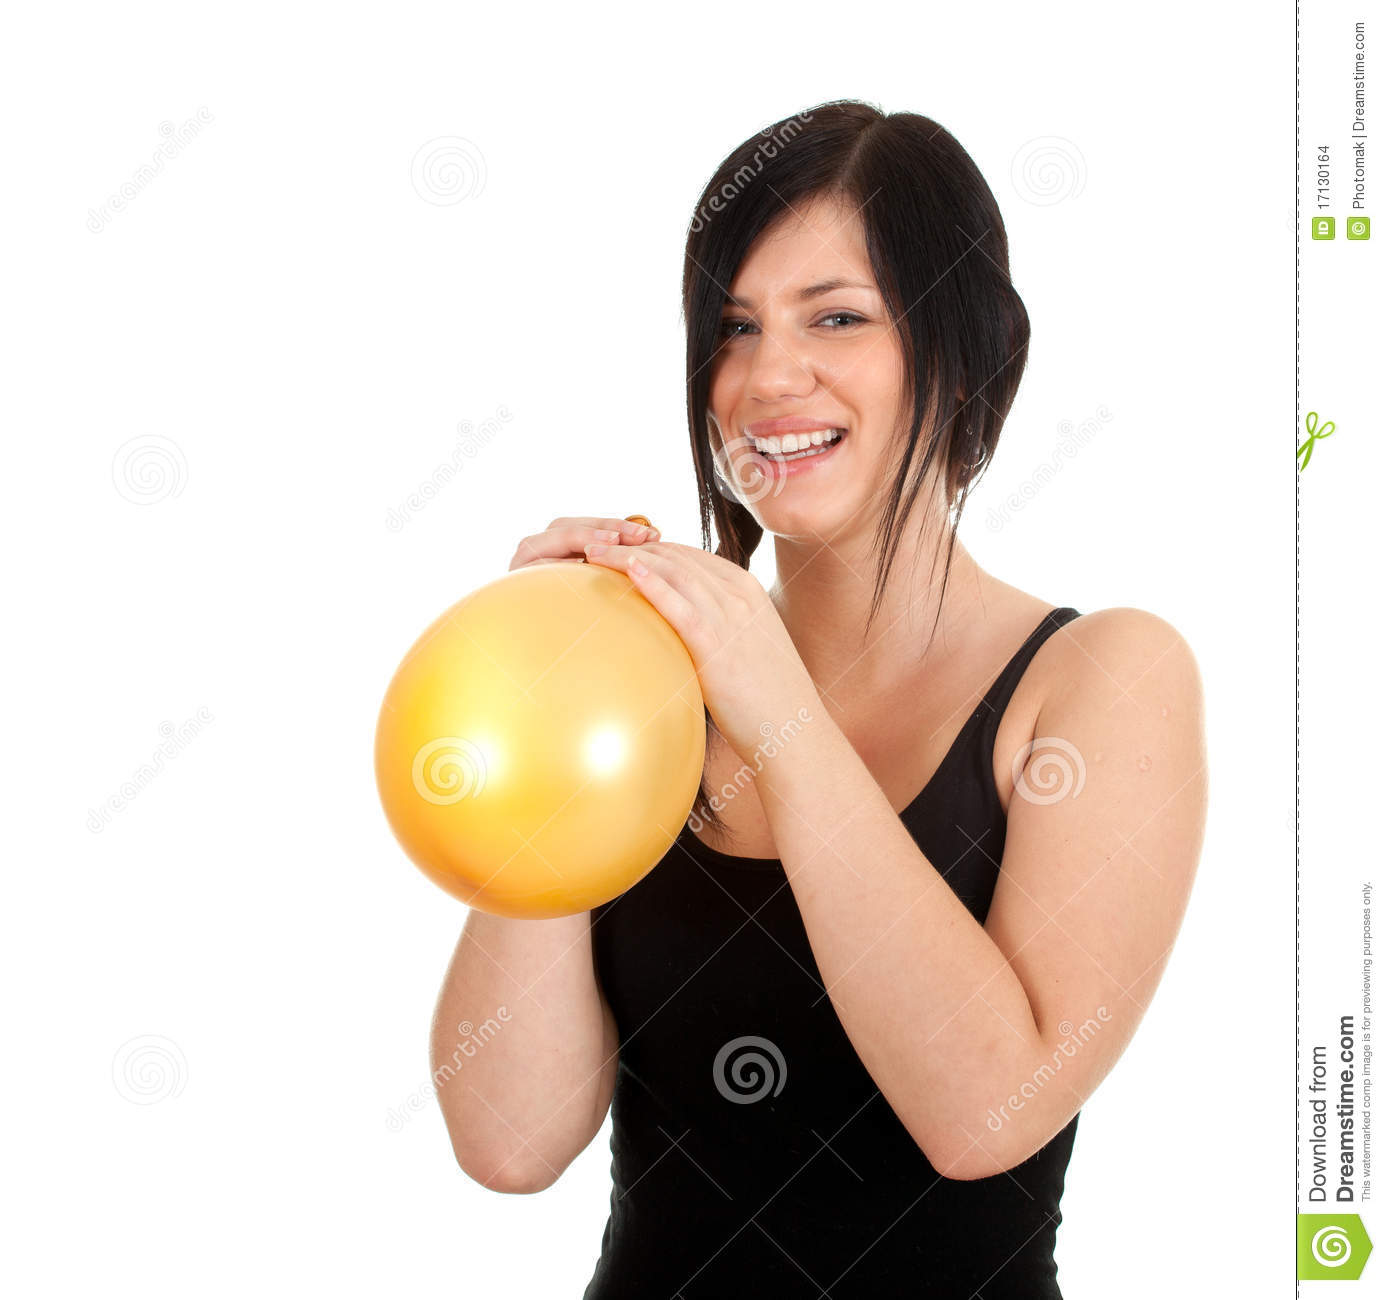 More similar stock images of ` Young woman inflating yellow balloon `